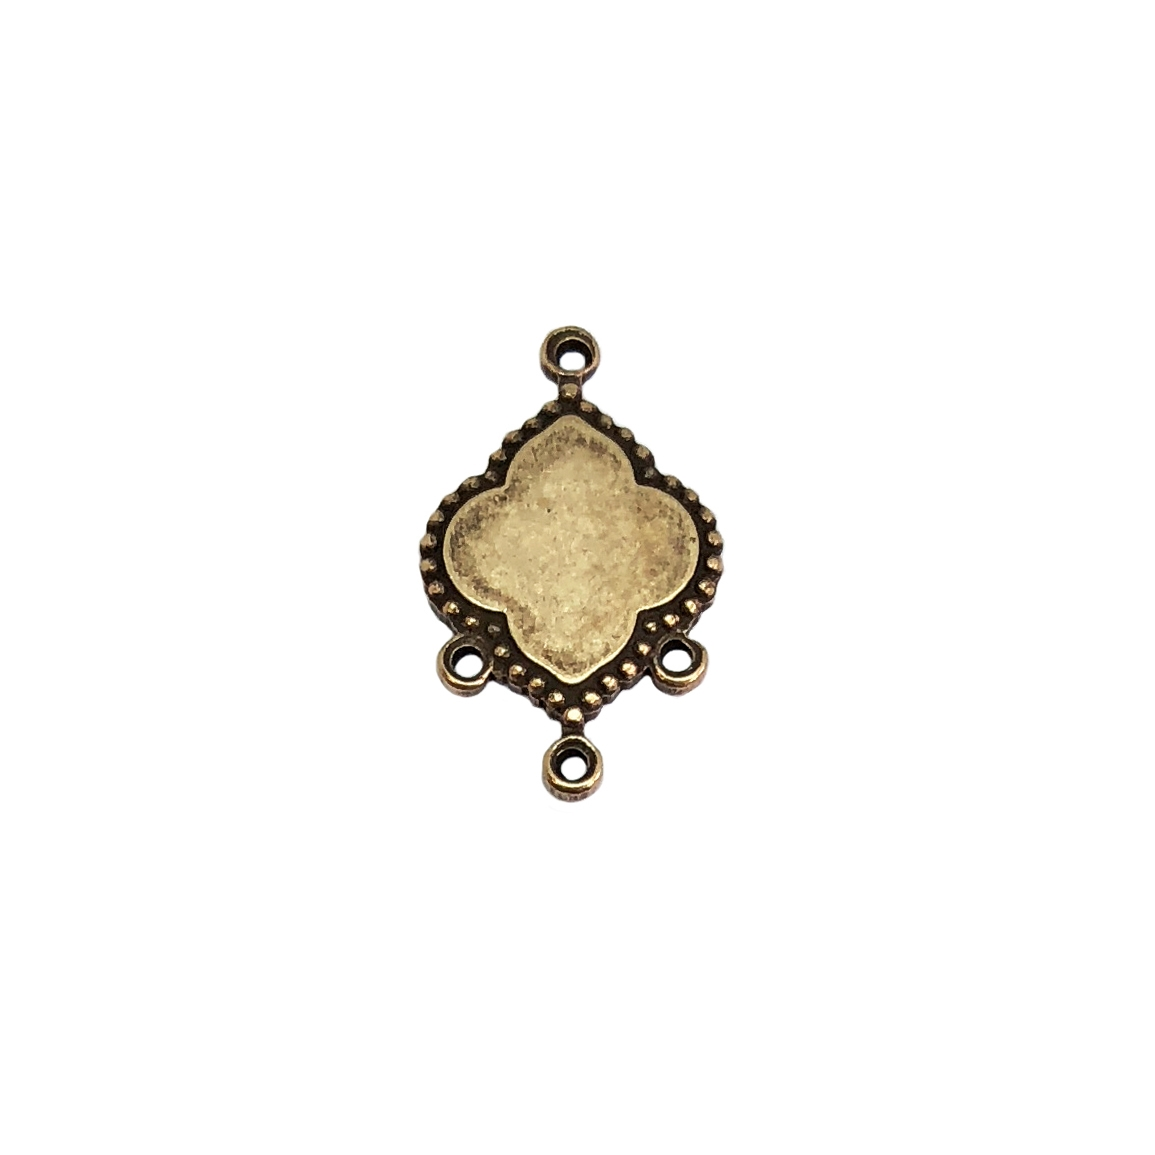 gypsy drop, brass ox, antique brass, drop, charm, earring drop, centerpiece drop, flower drop, blank center, centerpiece, earring drops, 20x13mm, jewelry making, jewelry supplies, B'sue Boutiques, US-made, nickel-free, jewelry drop, 05971